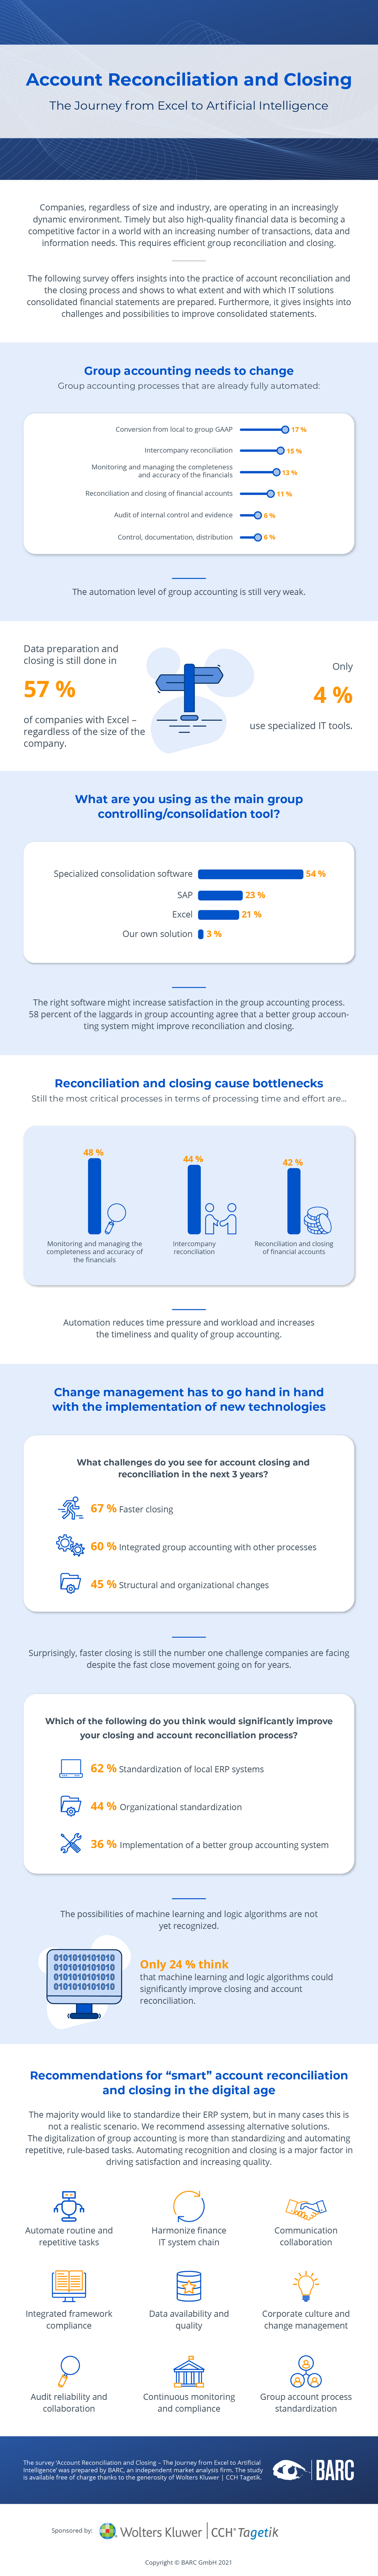 Account Reconciliation and Closing infographic